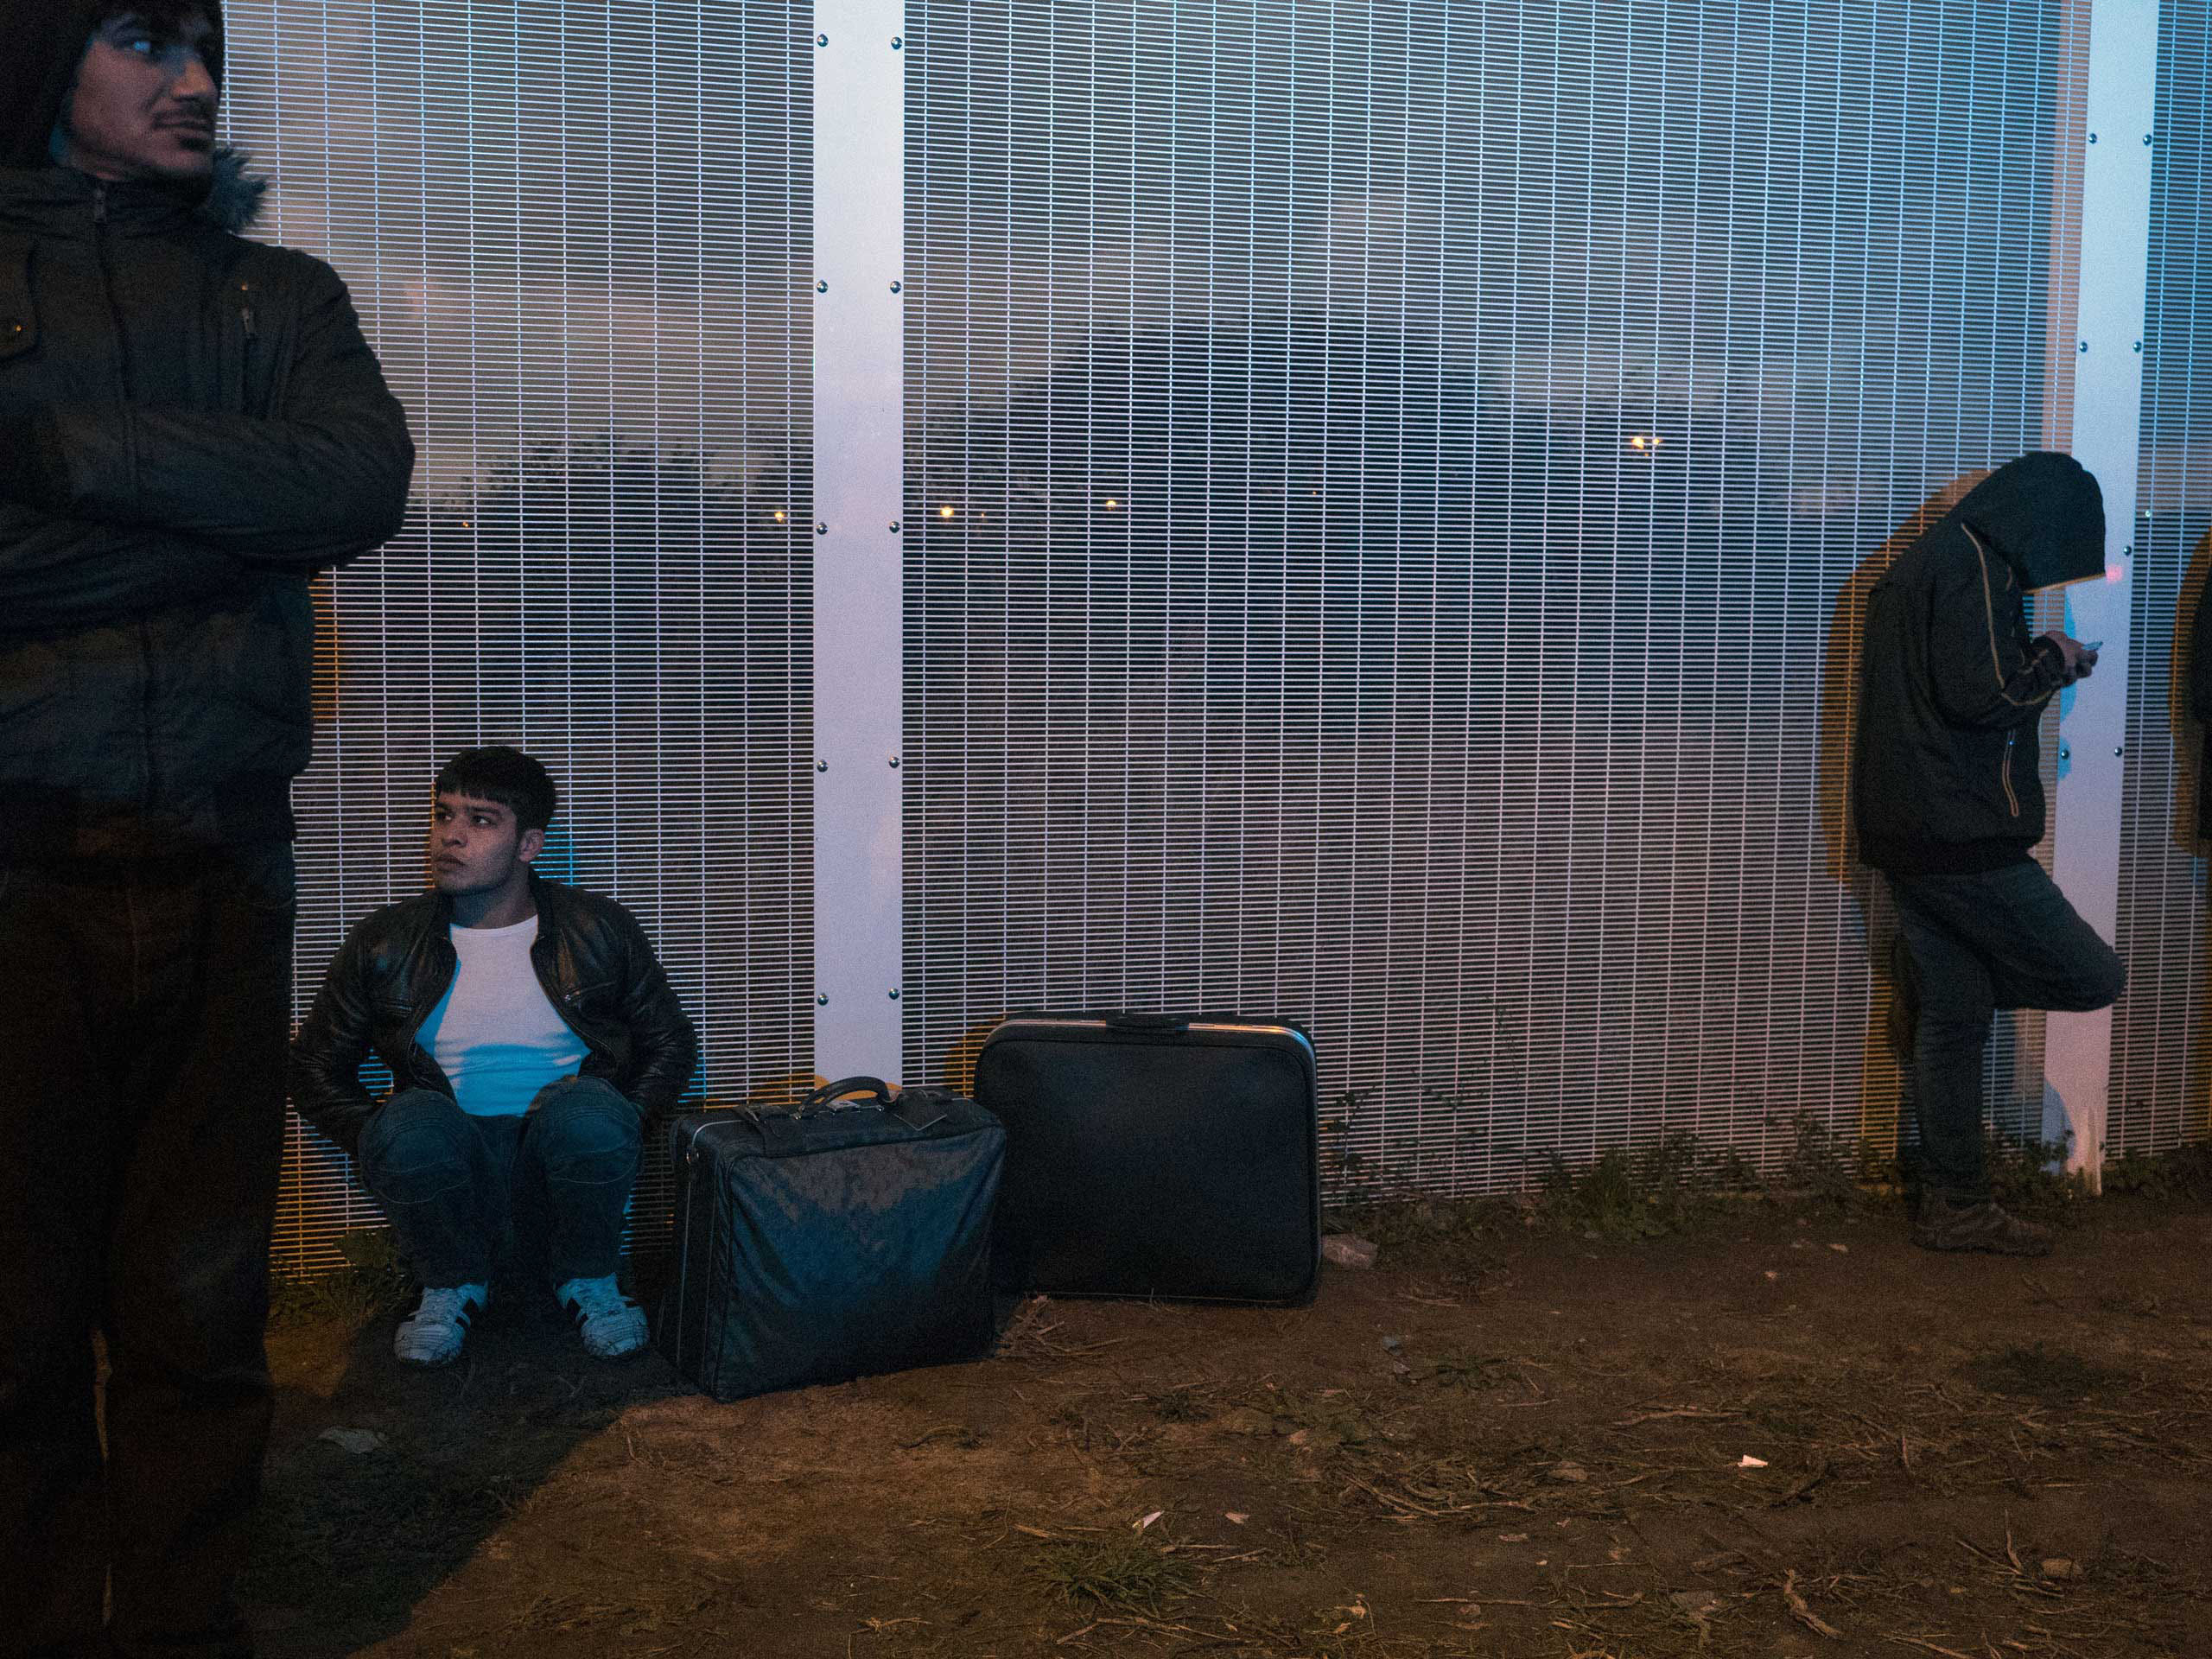 New arrivals at the entrance to the  jungle , Nov. 25, 2015, Calais, France.  The migrants who come to Calais hope to eventually make their way to the United Kingdom.